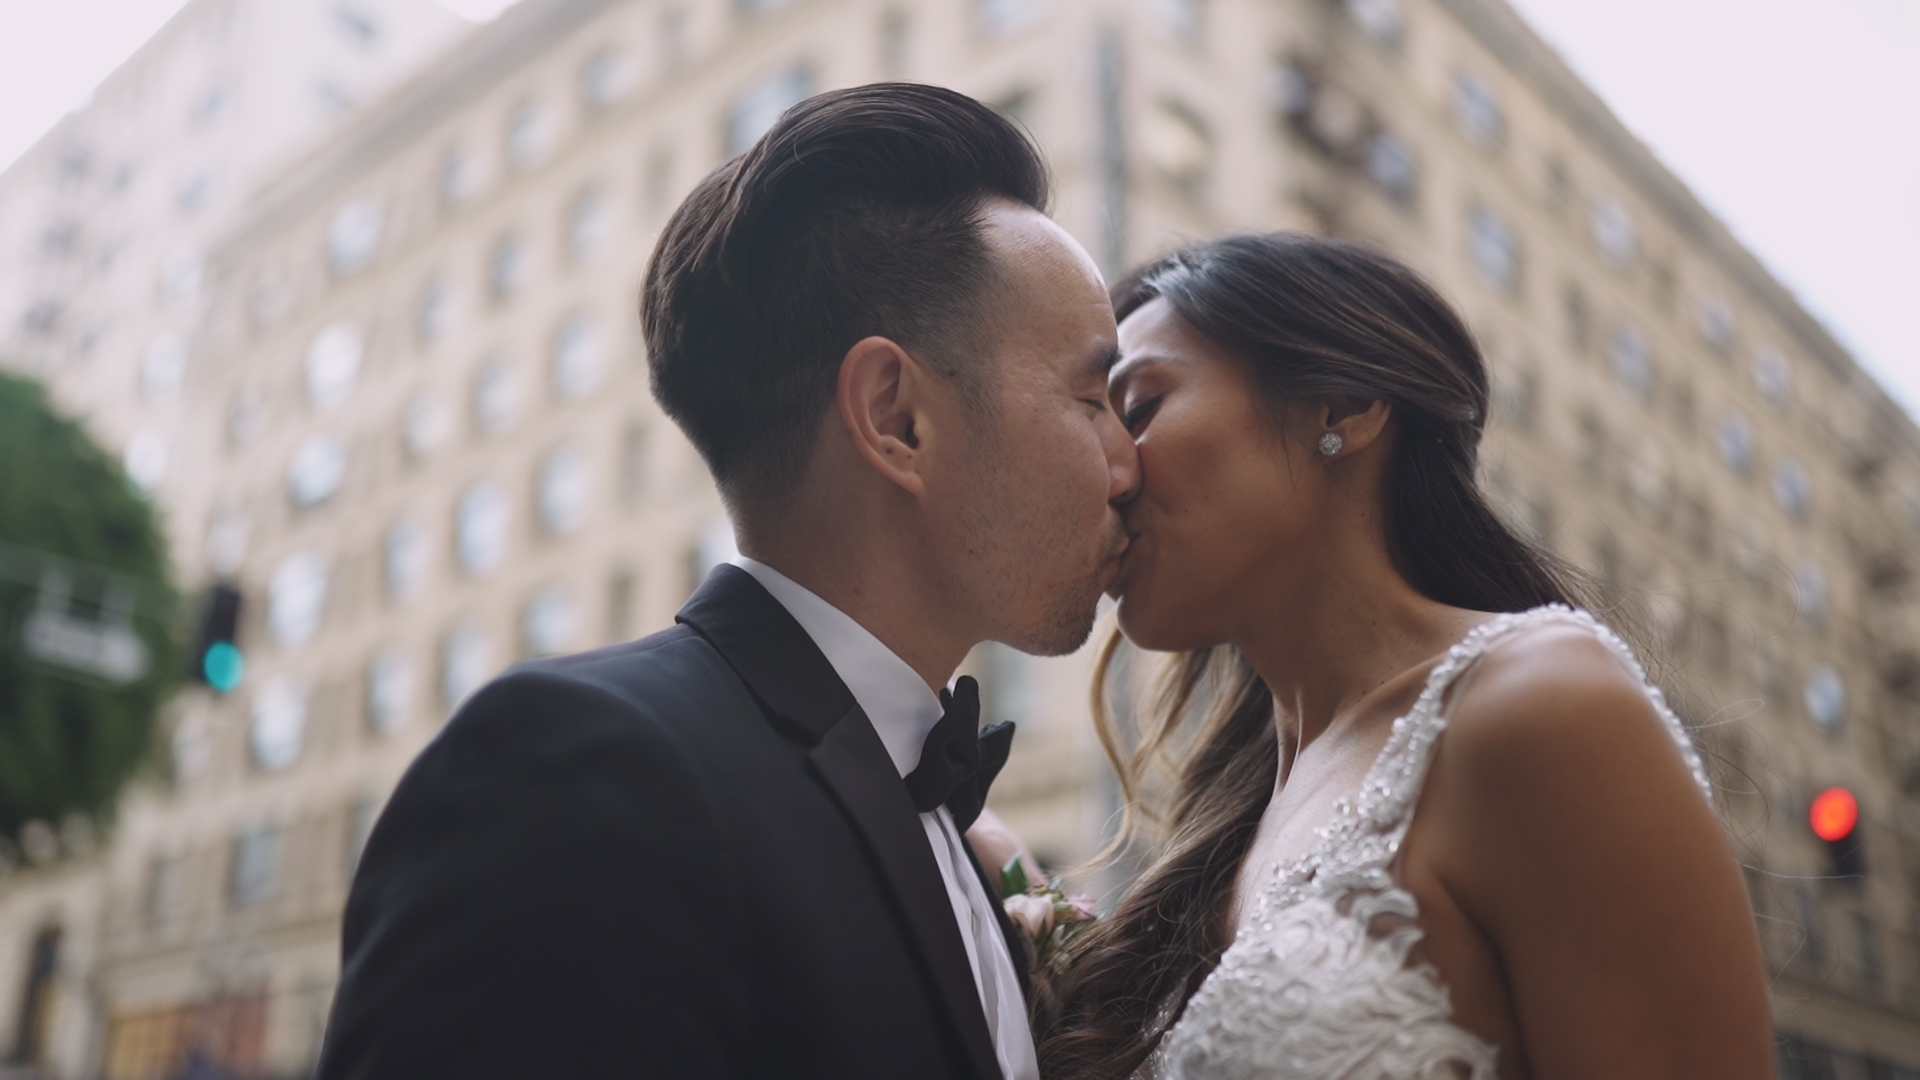 Christina + Don | Los Angeles, California | The Alexandria Ballrooms